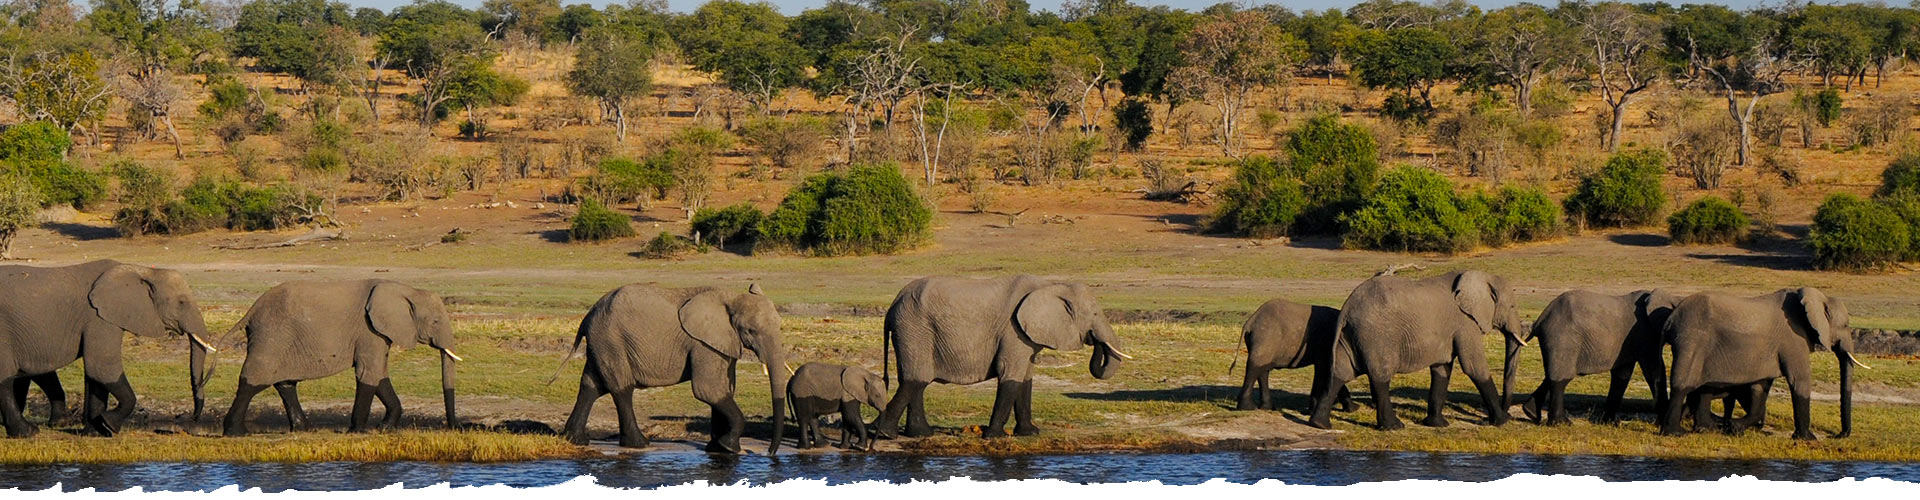 Explore-Botswana-Home-slider-01